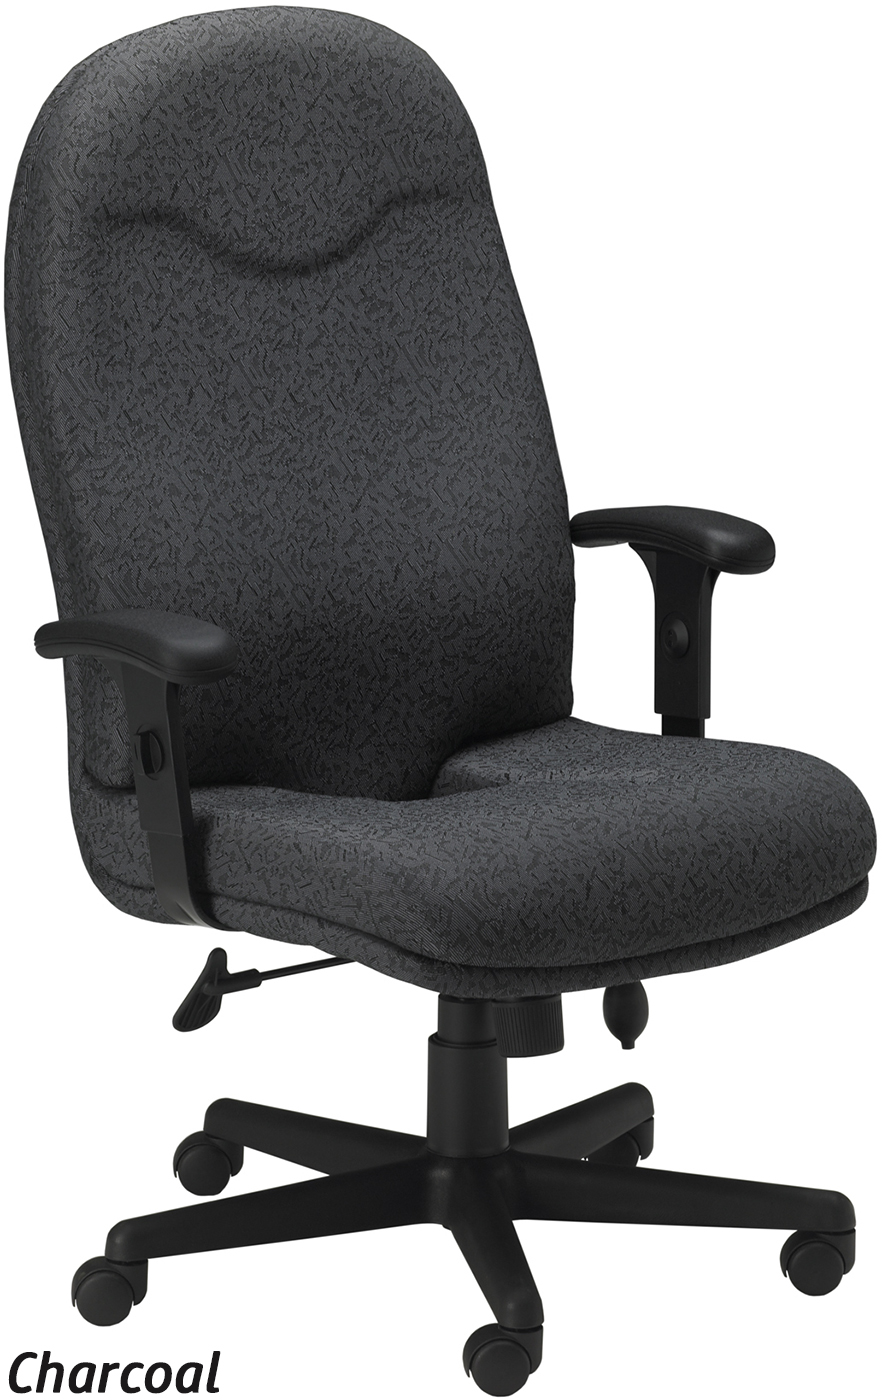 Most Ergonomic Office Chair Mayline Ergonomic Fabric Office Chair 9413ag